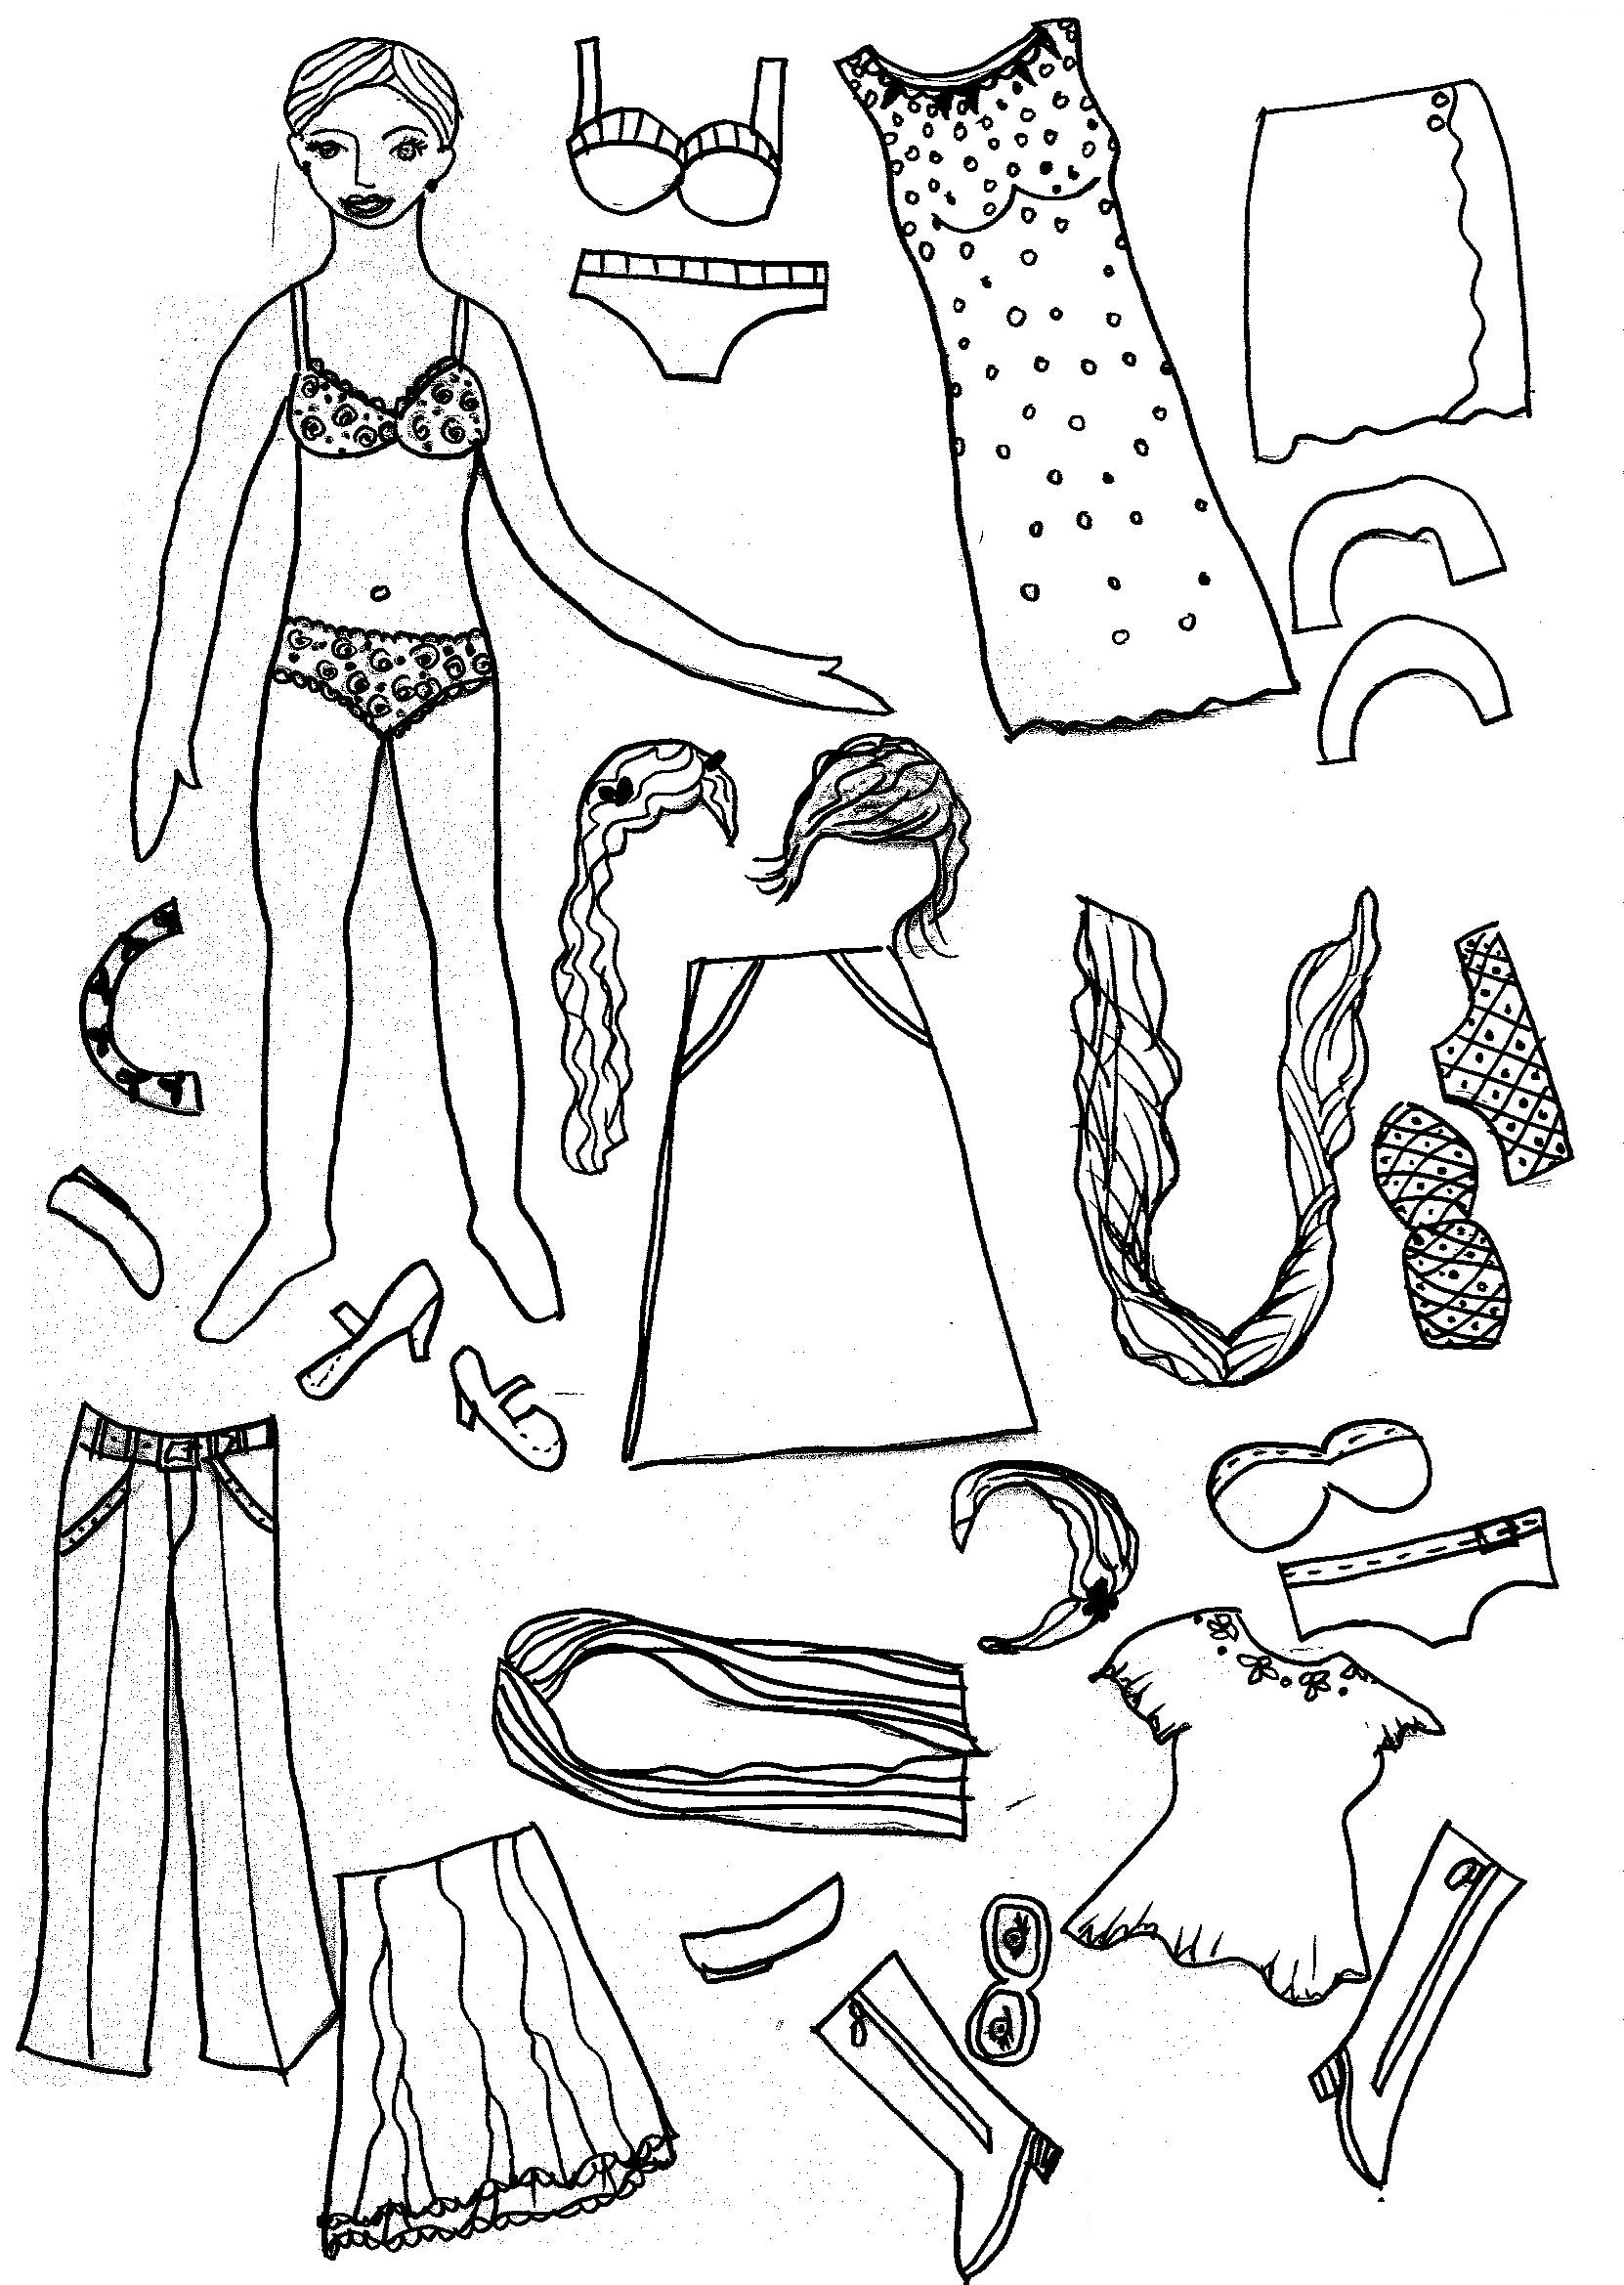 image about Printable Paper Doll Clothing identified as Printable Paper Doll Coloring Web pages